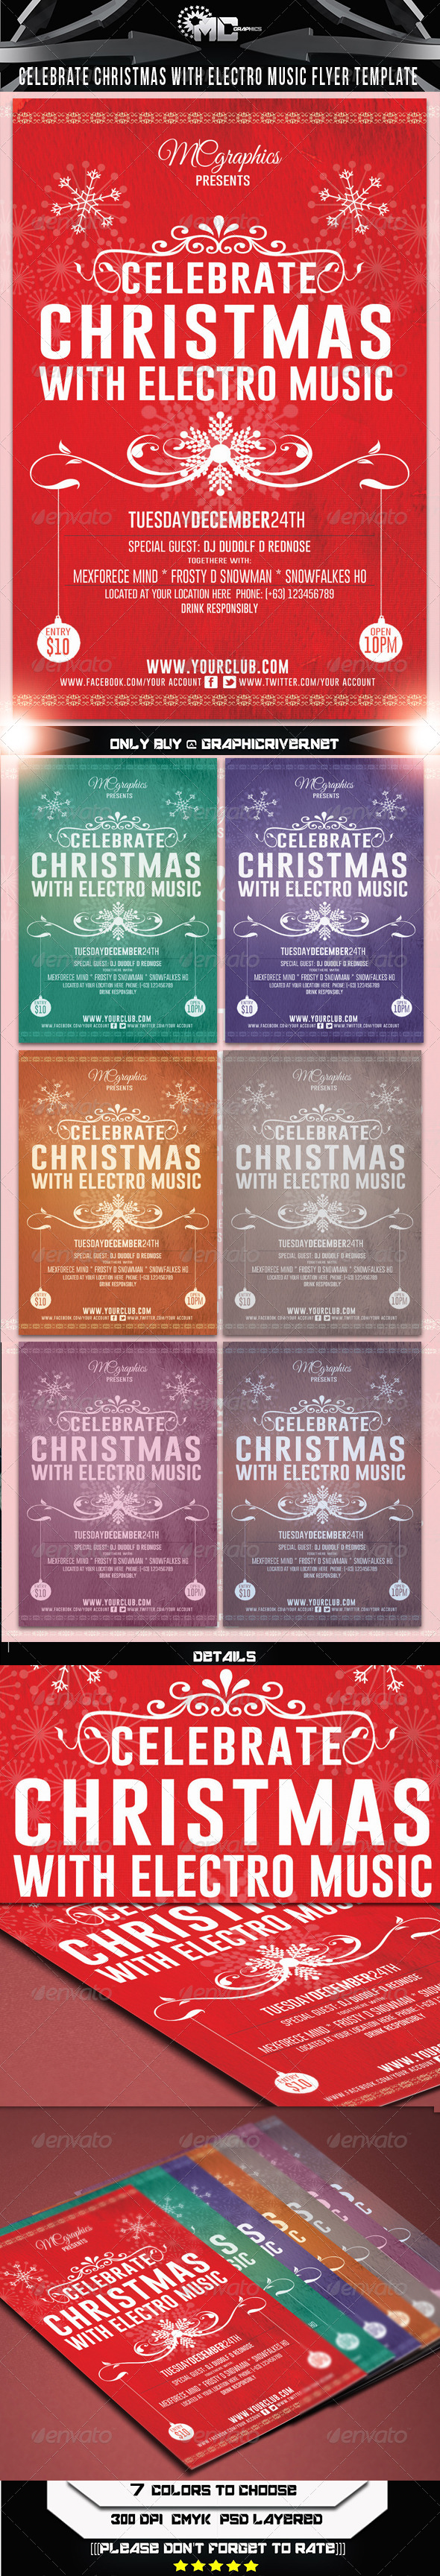 GraphicRiver Celebrate Christmas Electro Music Flyer 6163219